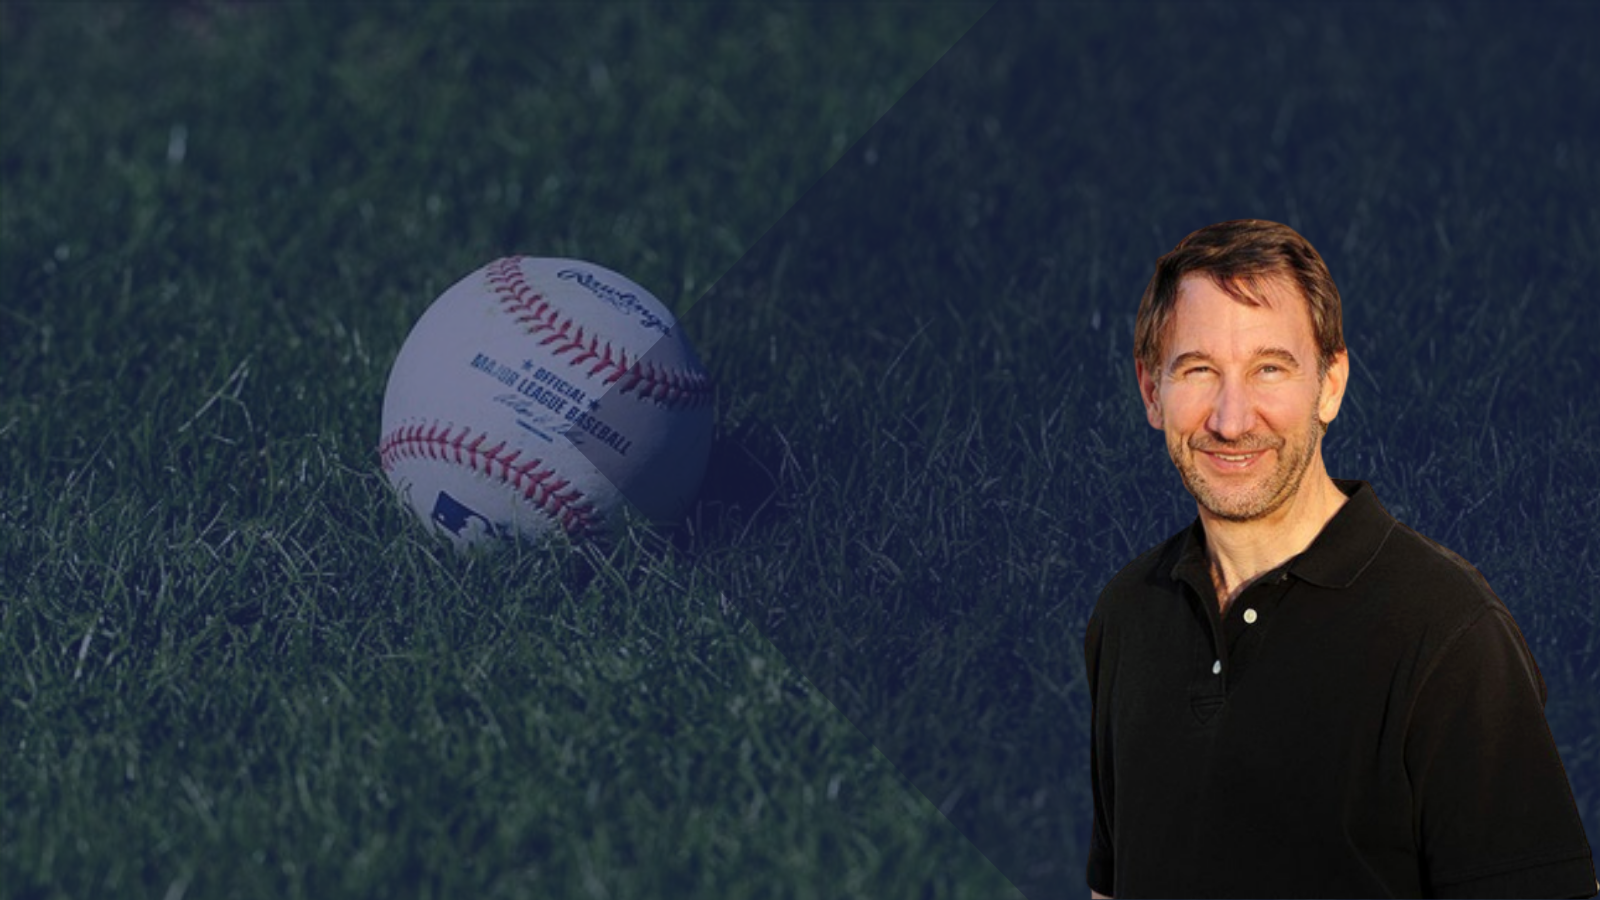 Ep. 74: Rick Allen Comments and Advice For Student Athletes Affected By COVID-19 | A Baseball Podcast